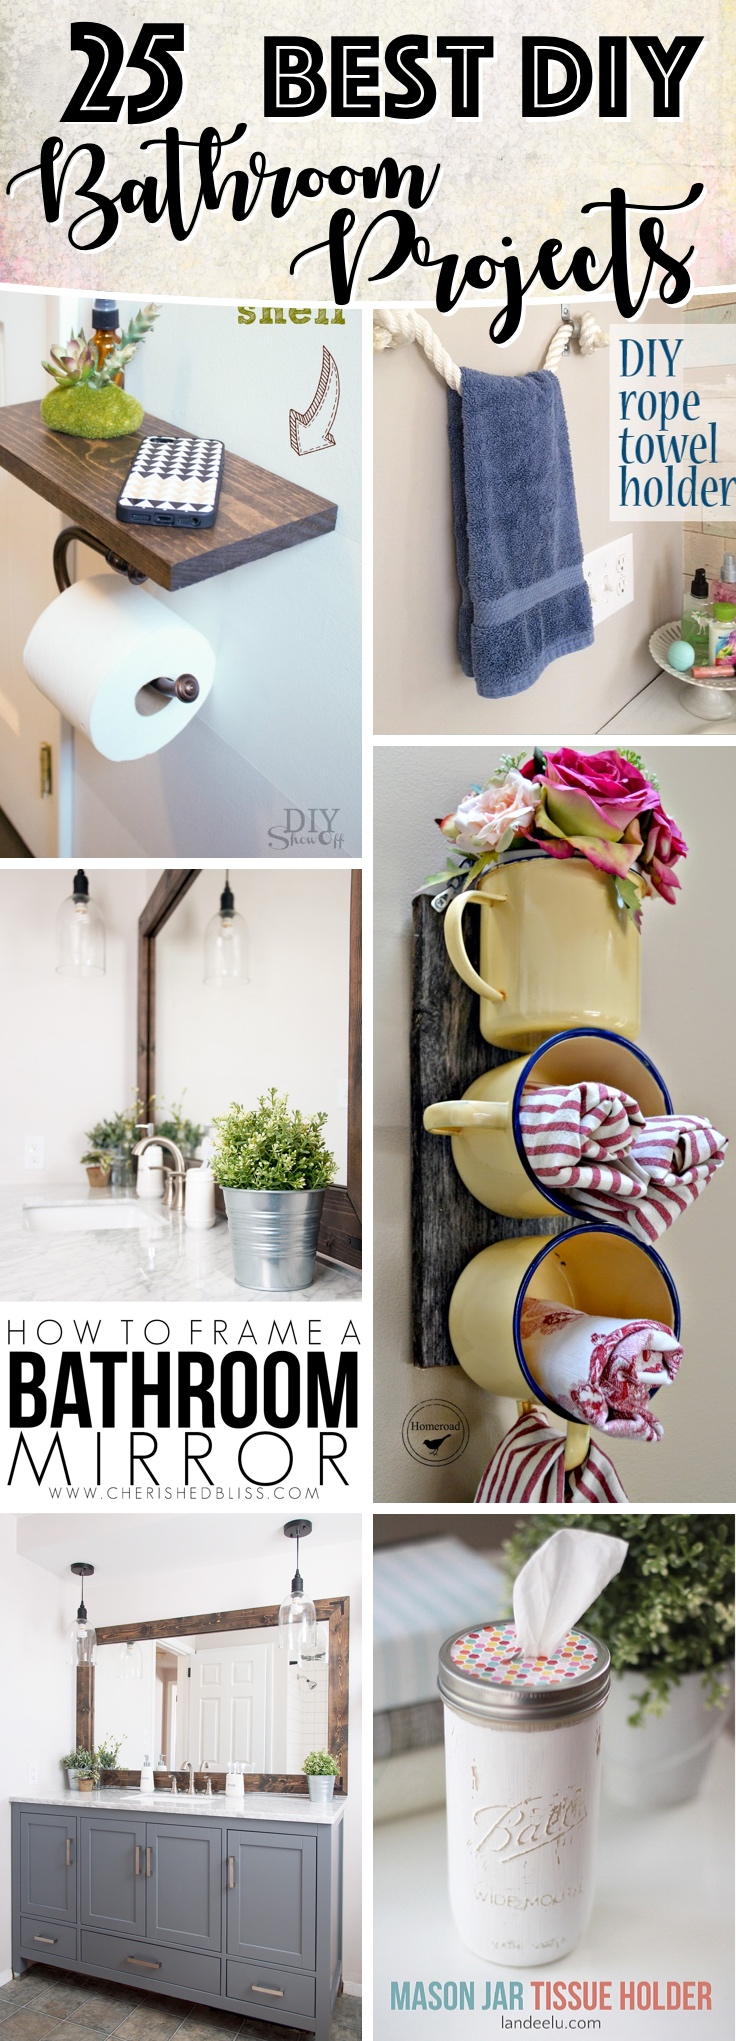 Utterly Innovative DIY Bathroom Projects To Give Your Space a Chic Makeover